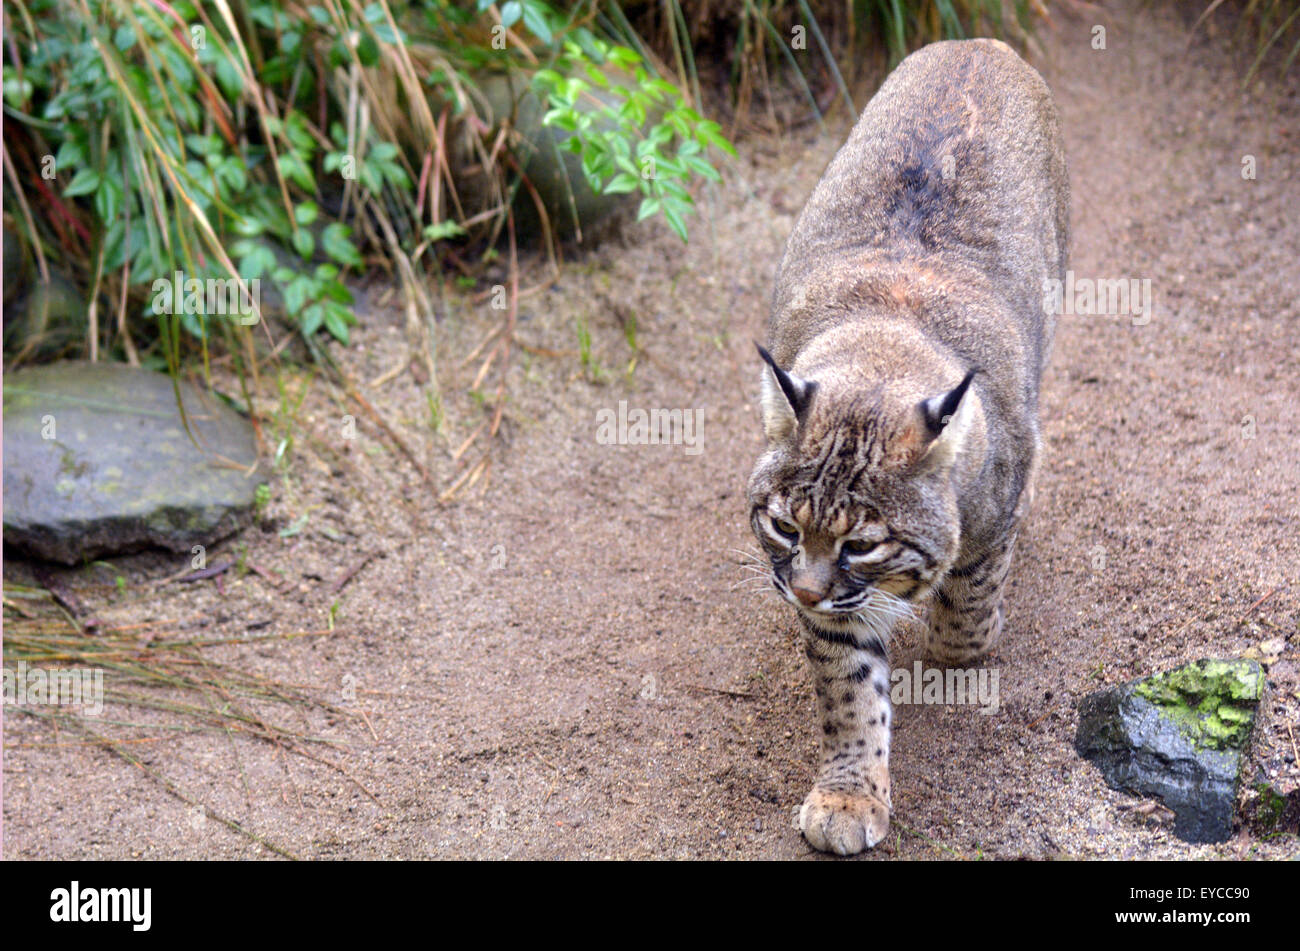 Active Bobcat walks in North America bush land territory. - Stock Image